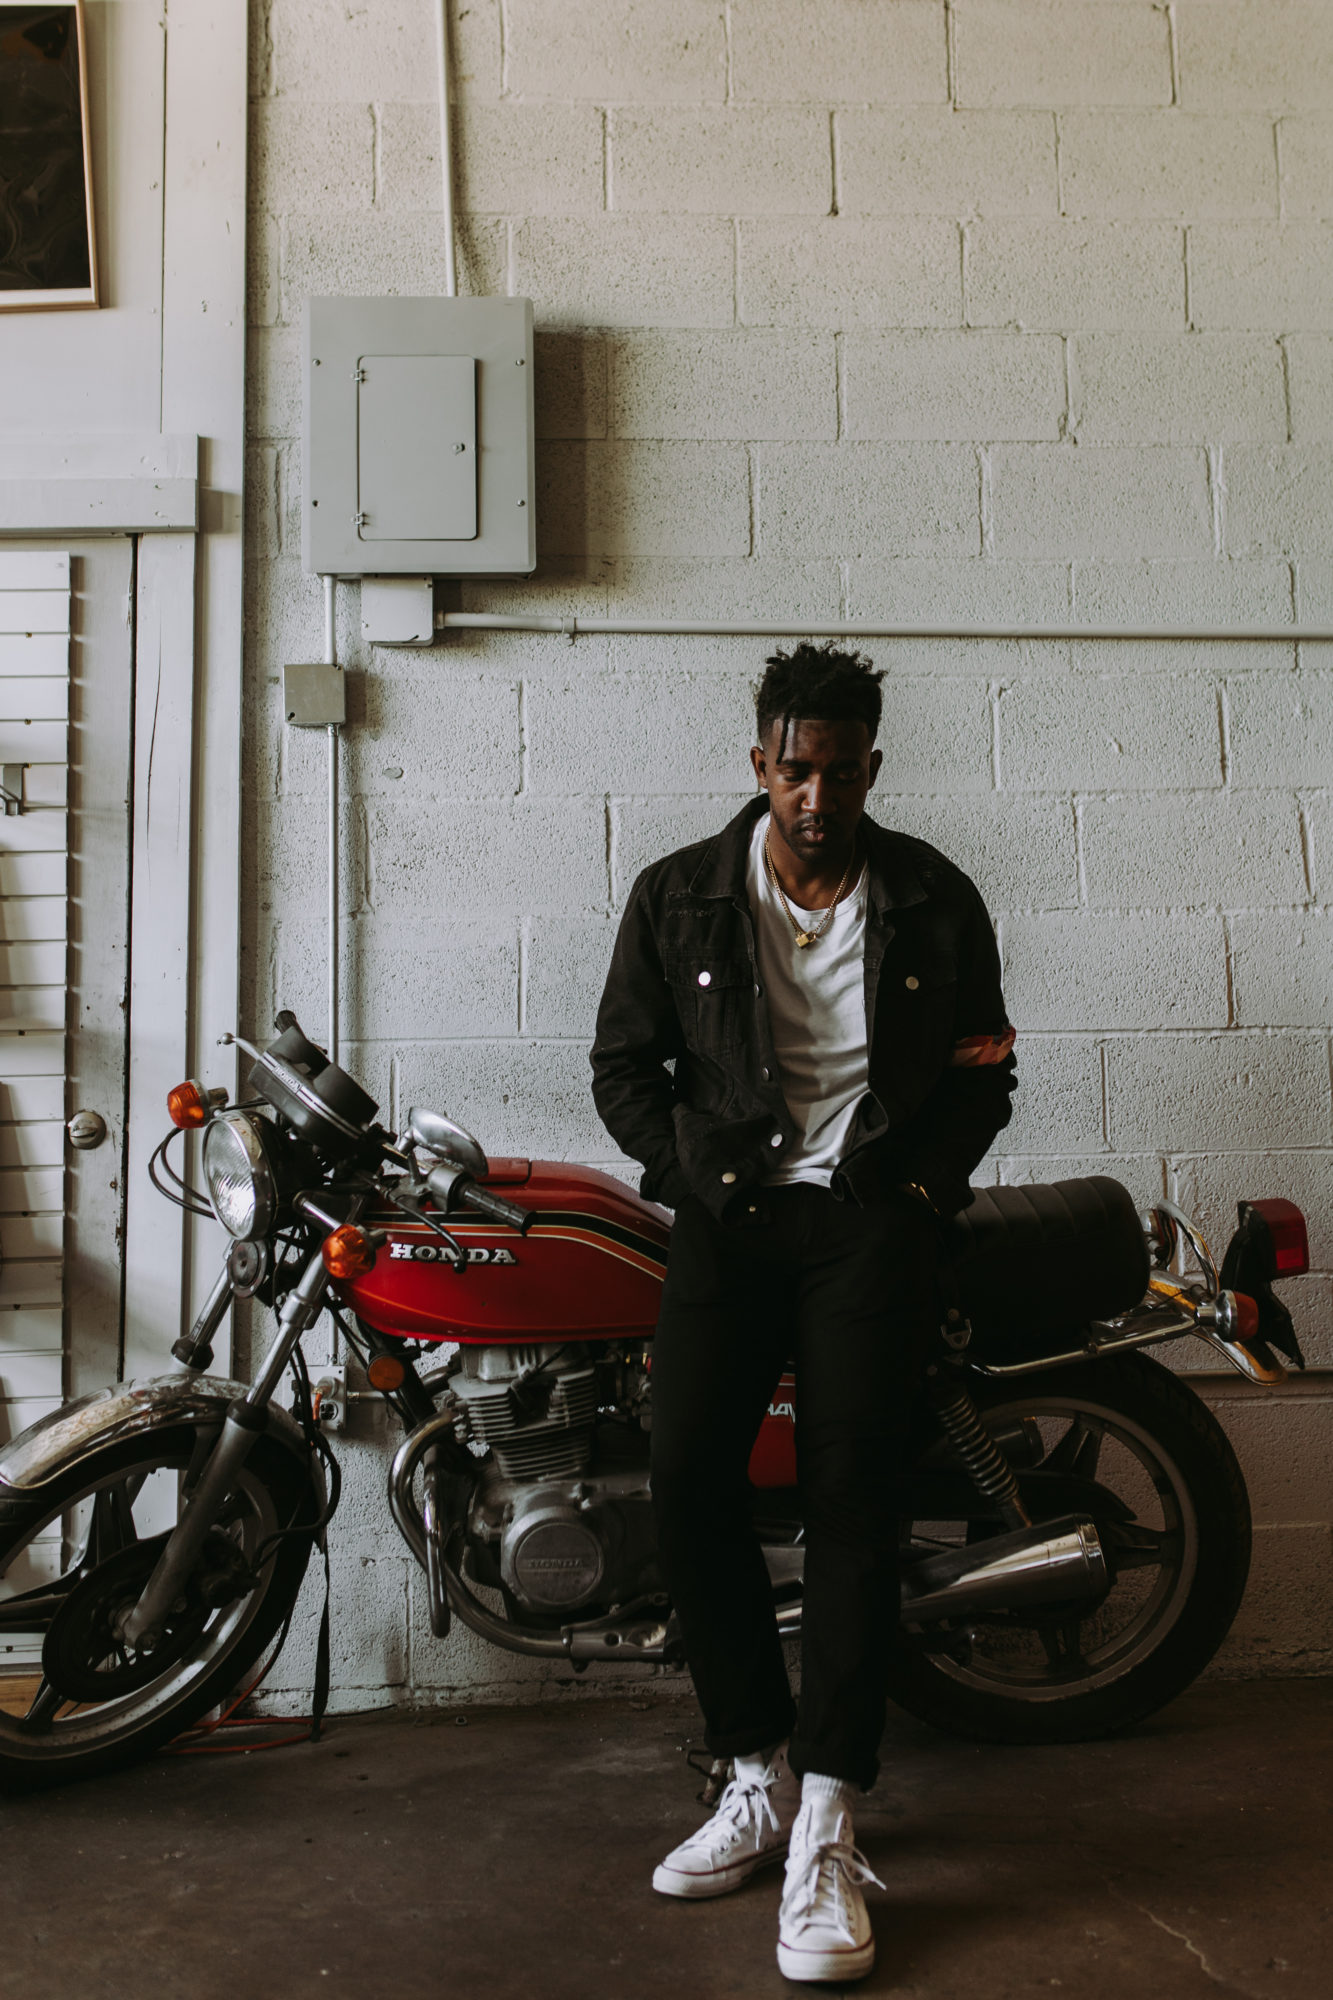 Jay Warren, local R&B singer-songwriter has a business plan that could trailblaze a path to mainstream success as an independent recording artist.